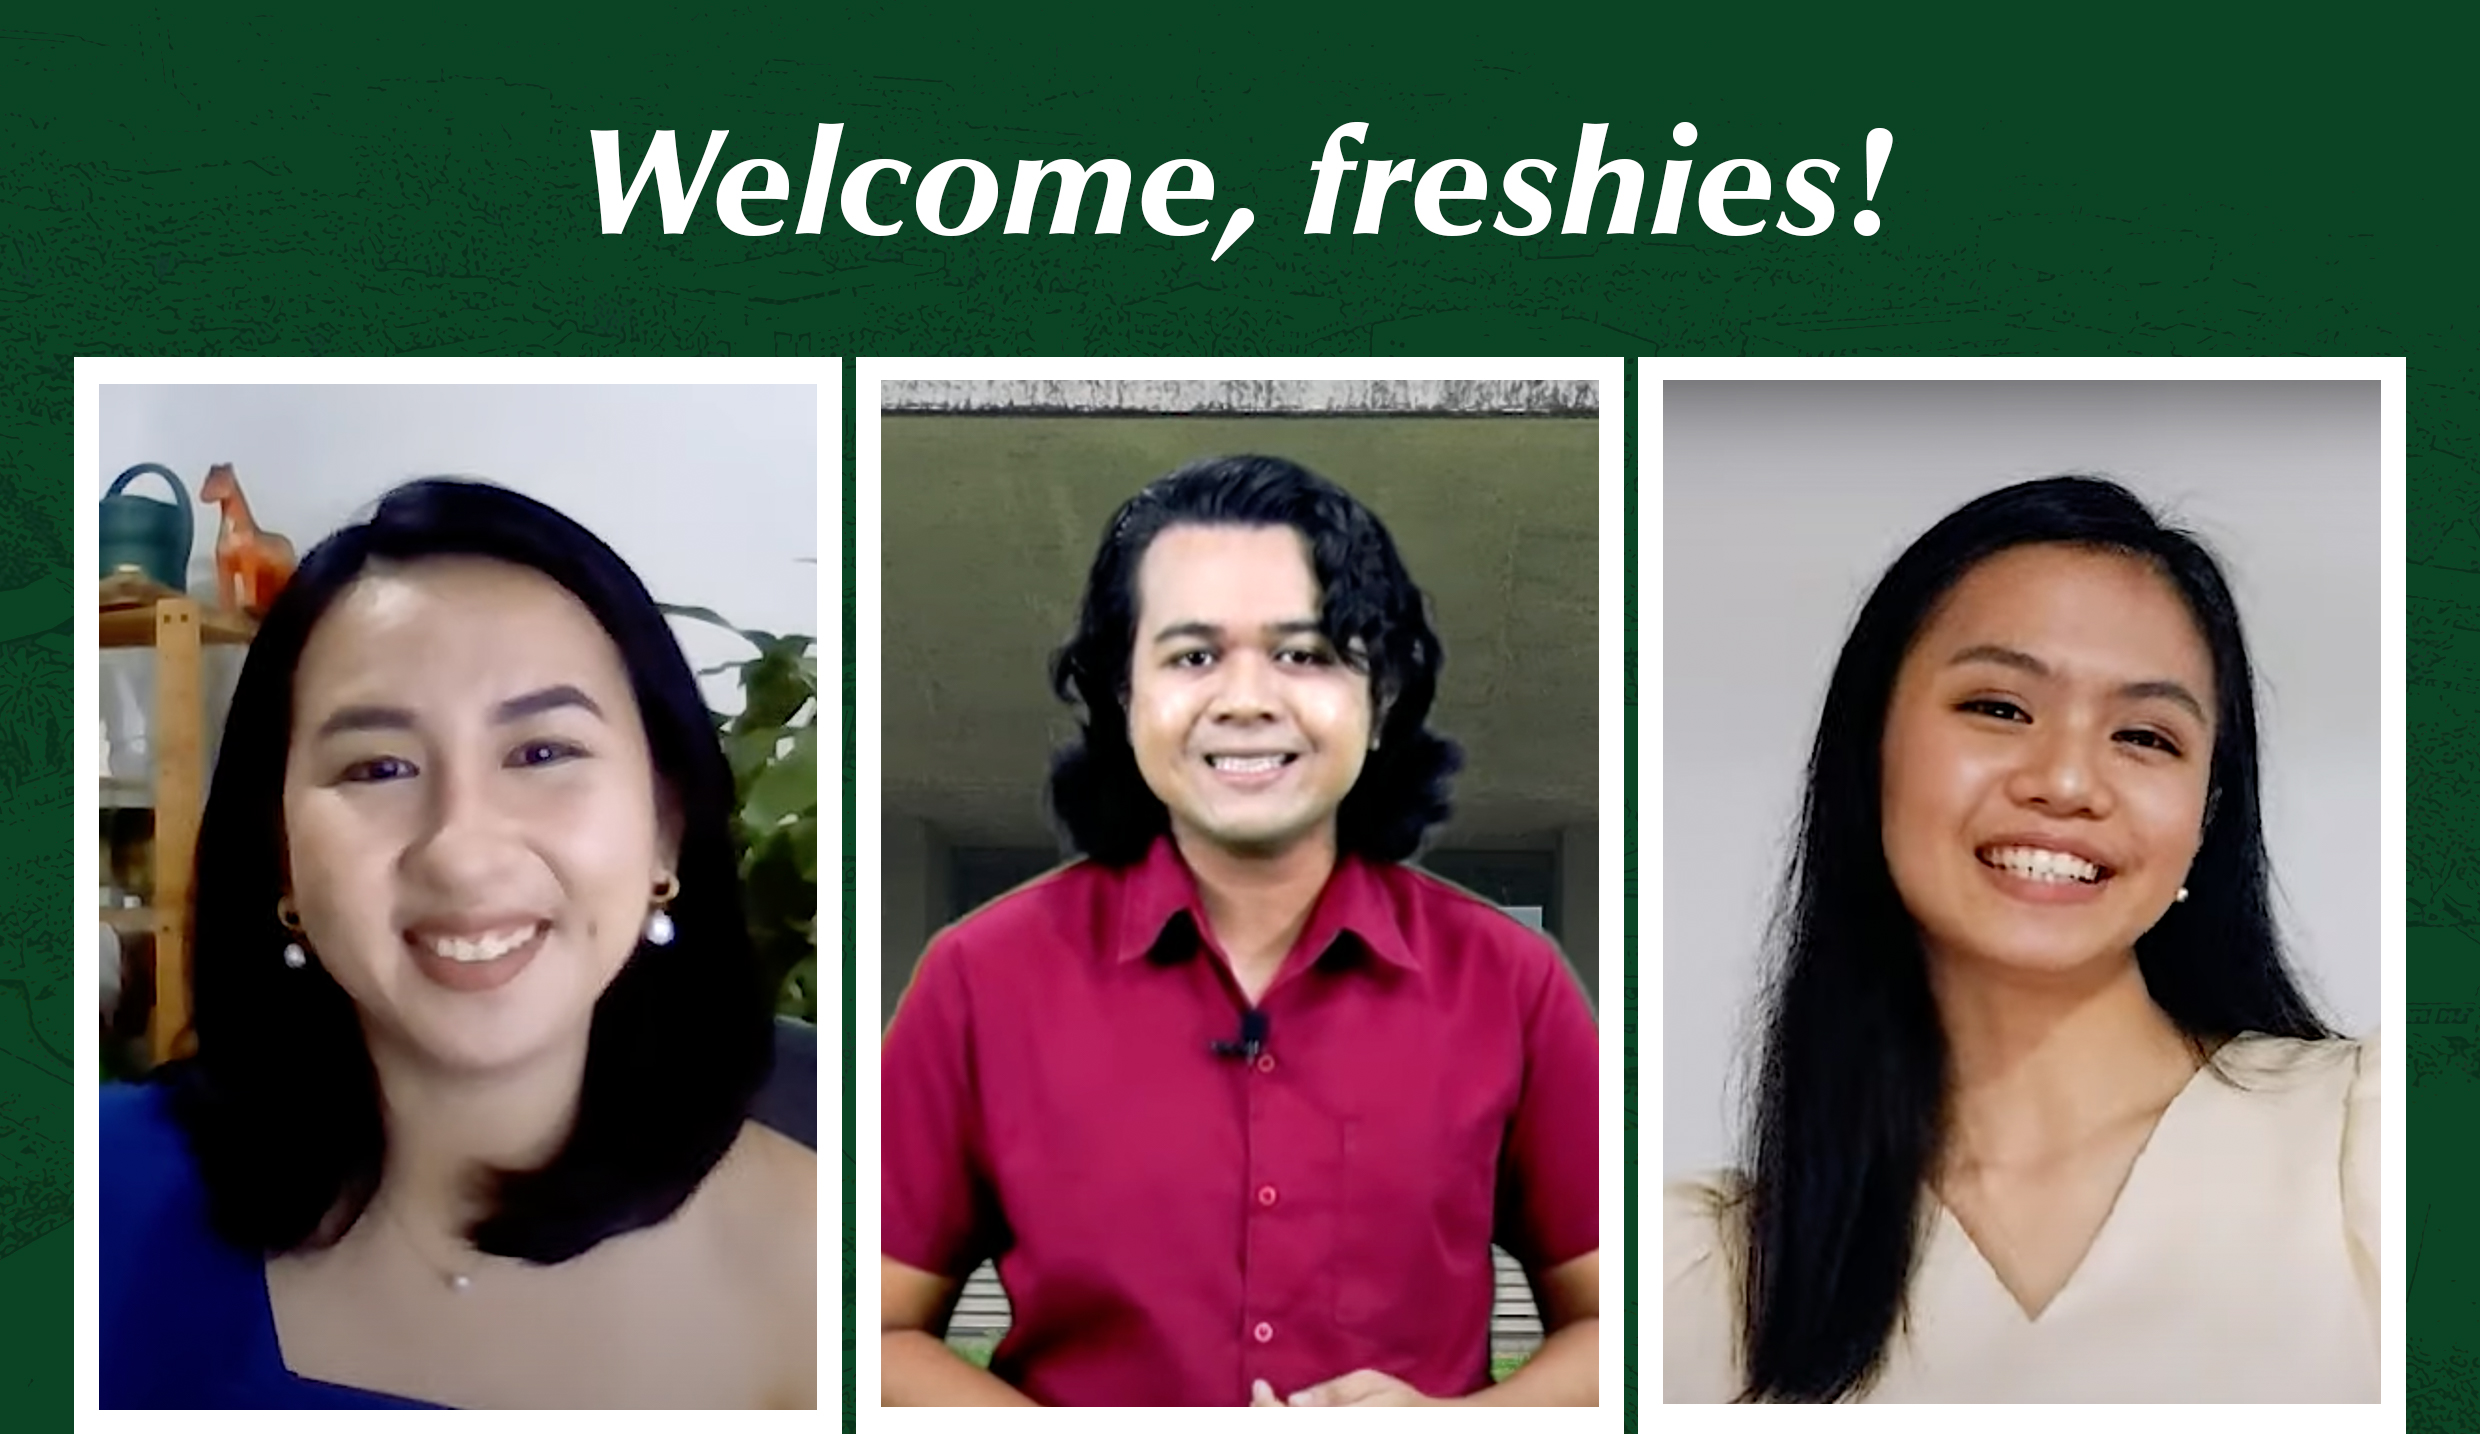 Community Pantry's Patreng Non joins UPLB in welcoming freshies